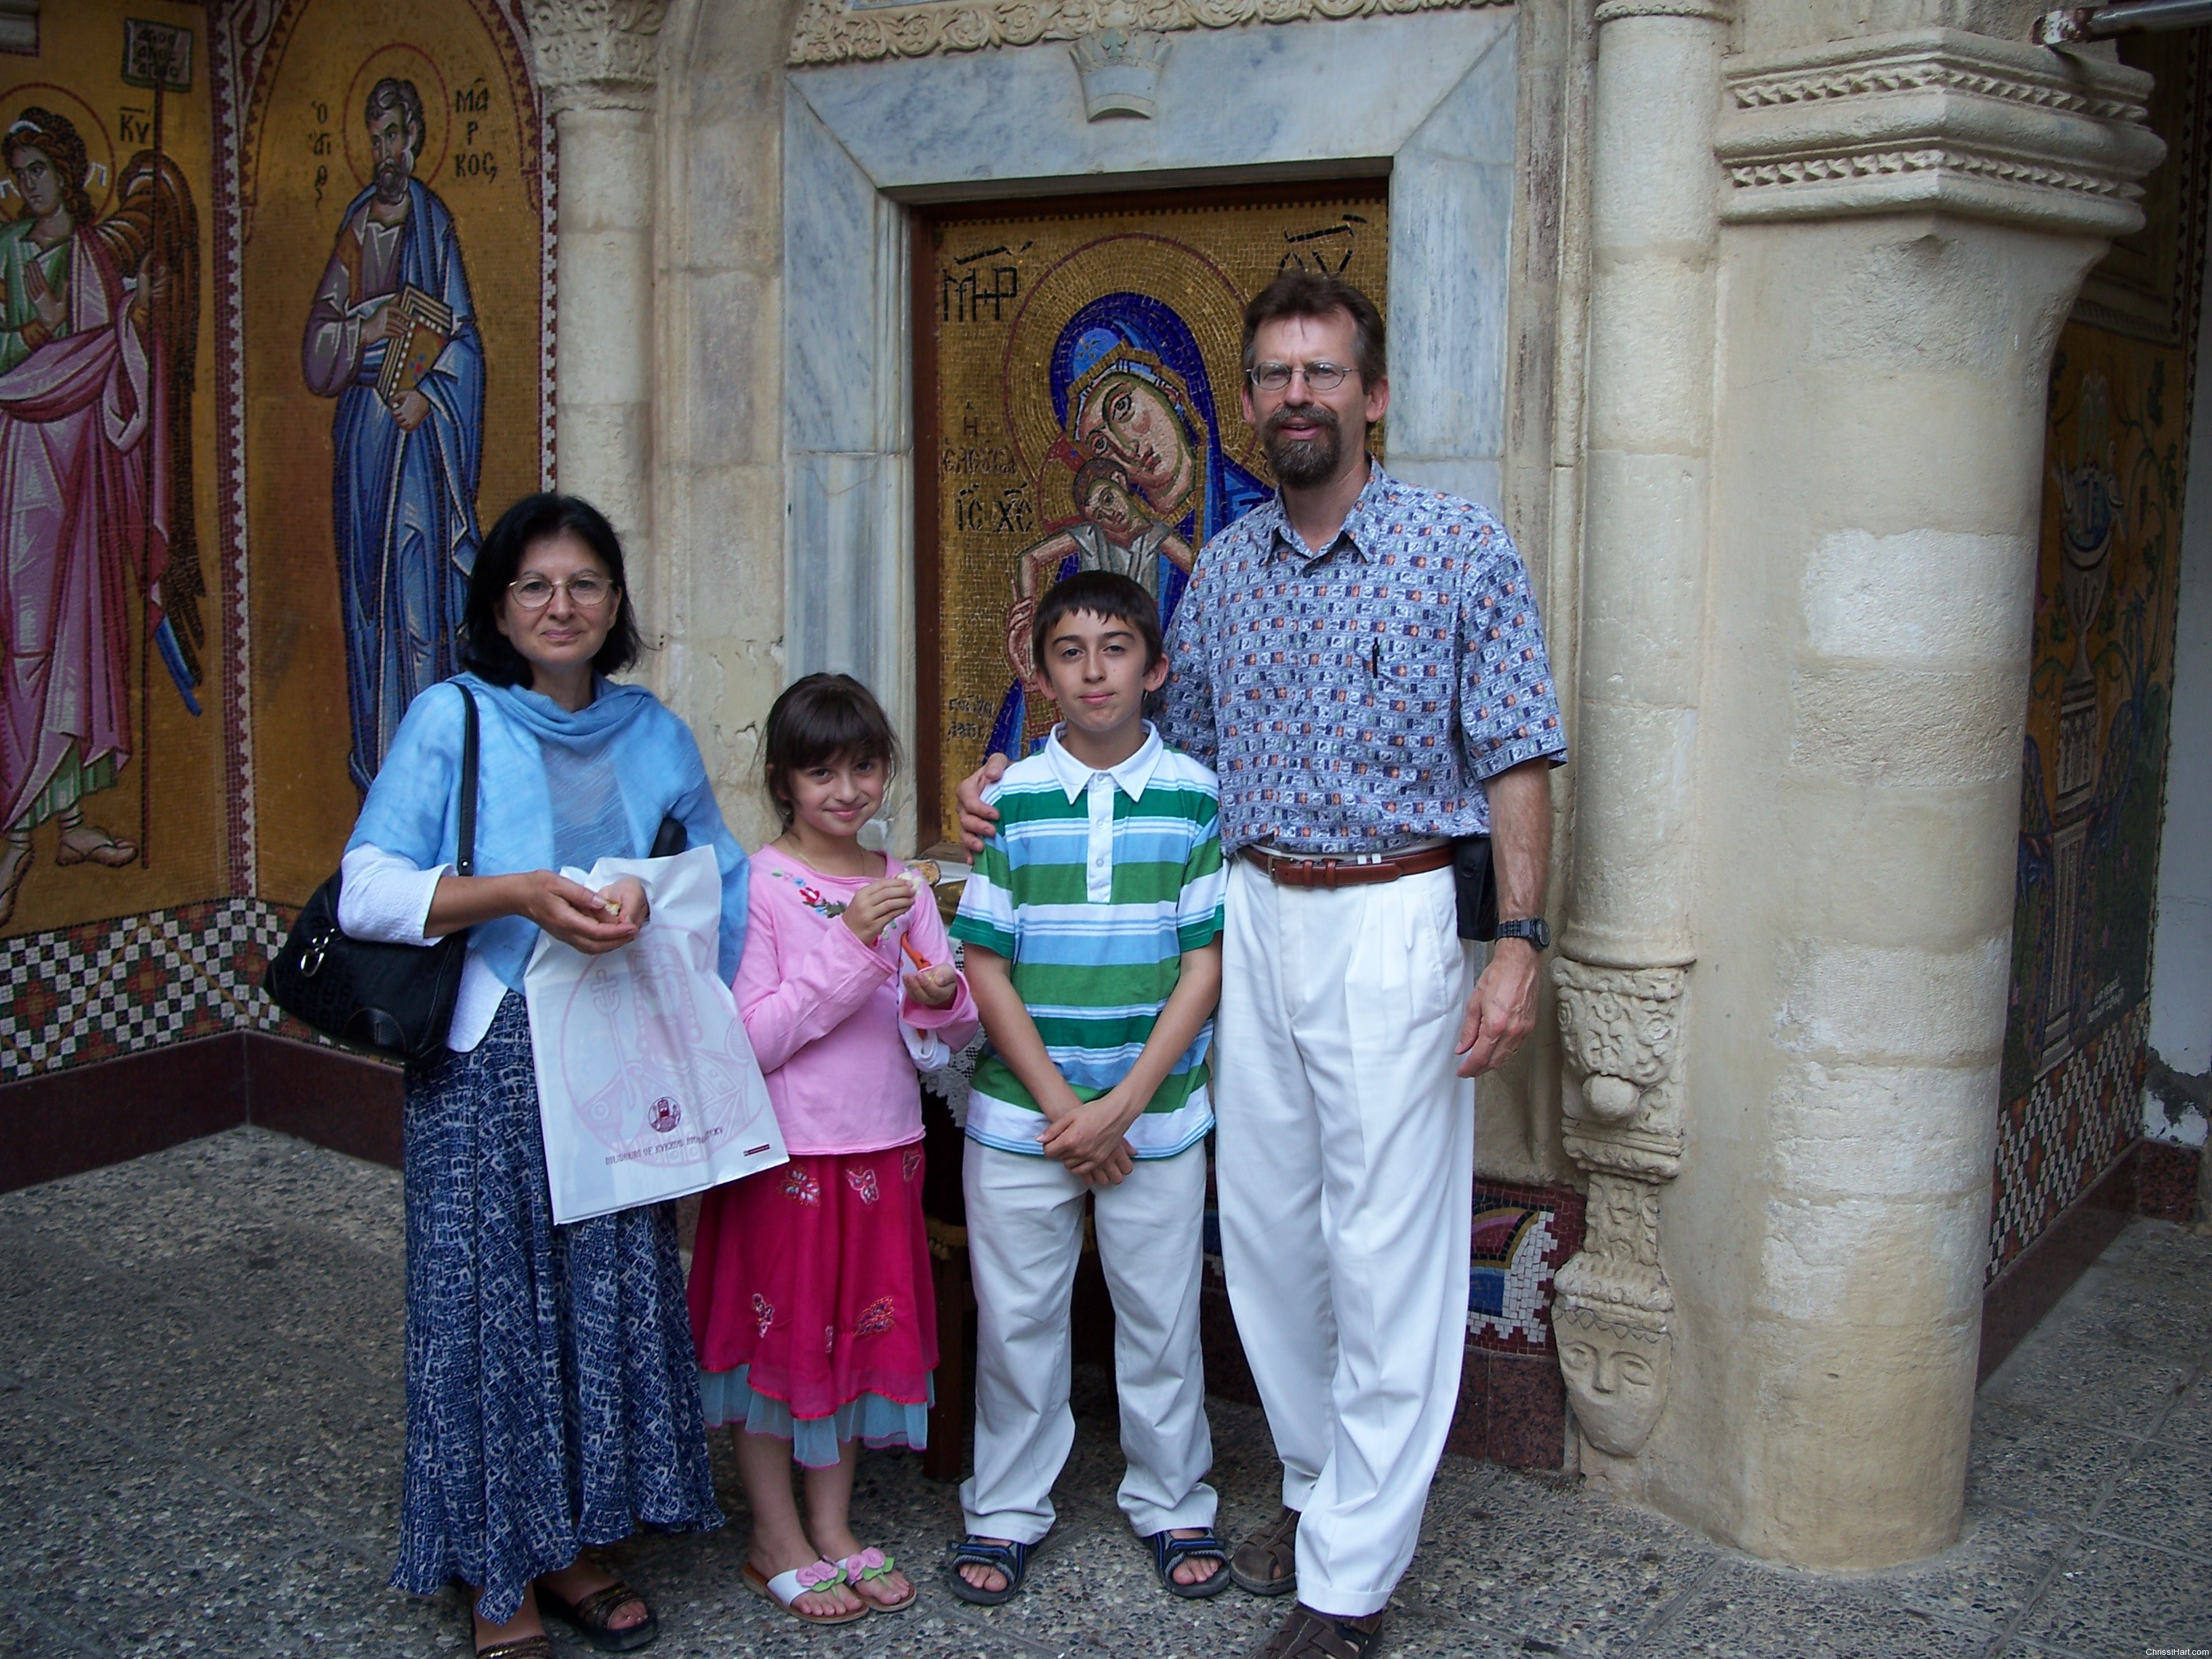 Author and family outside church